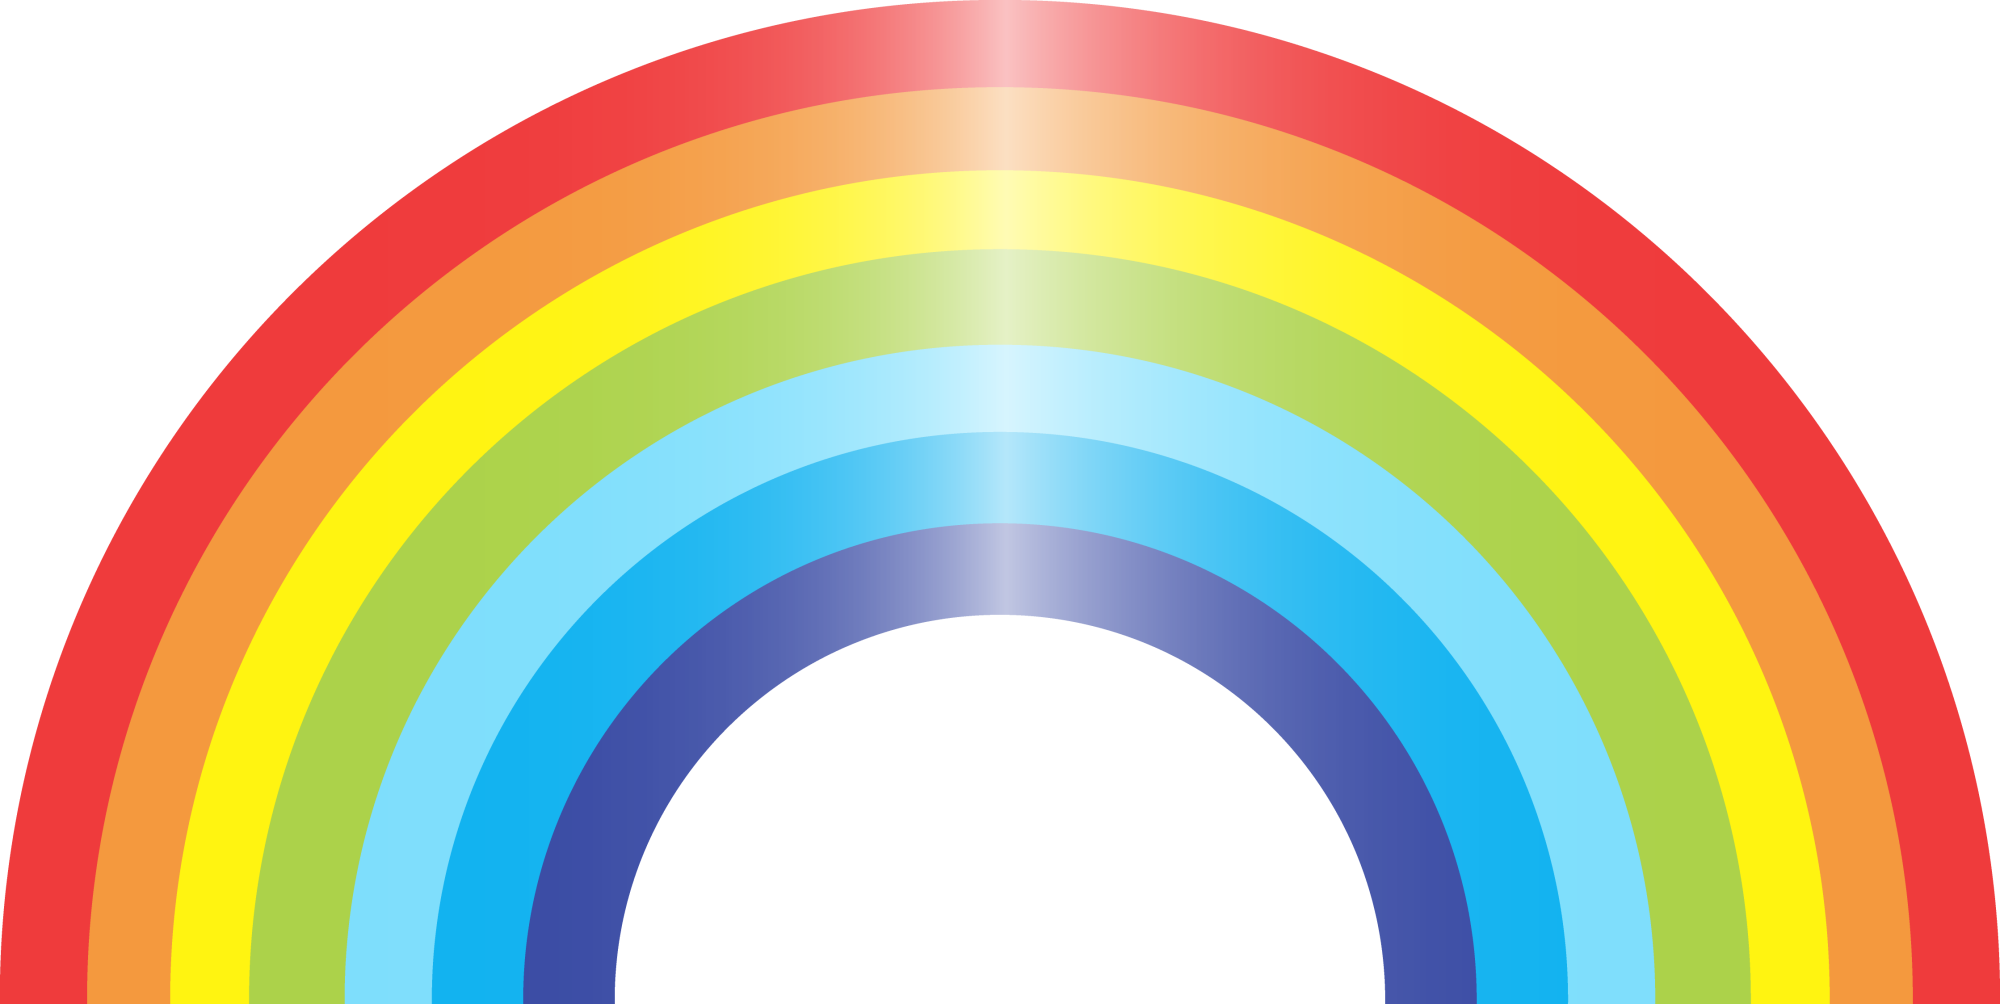 Rainbows Lights Effect Png 2000x1004, Rainbow HD PNG Download